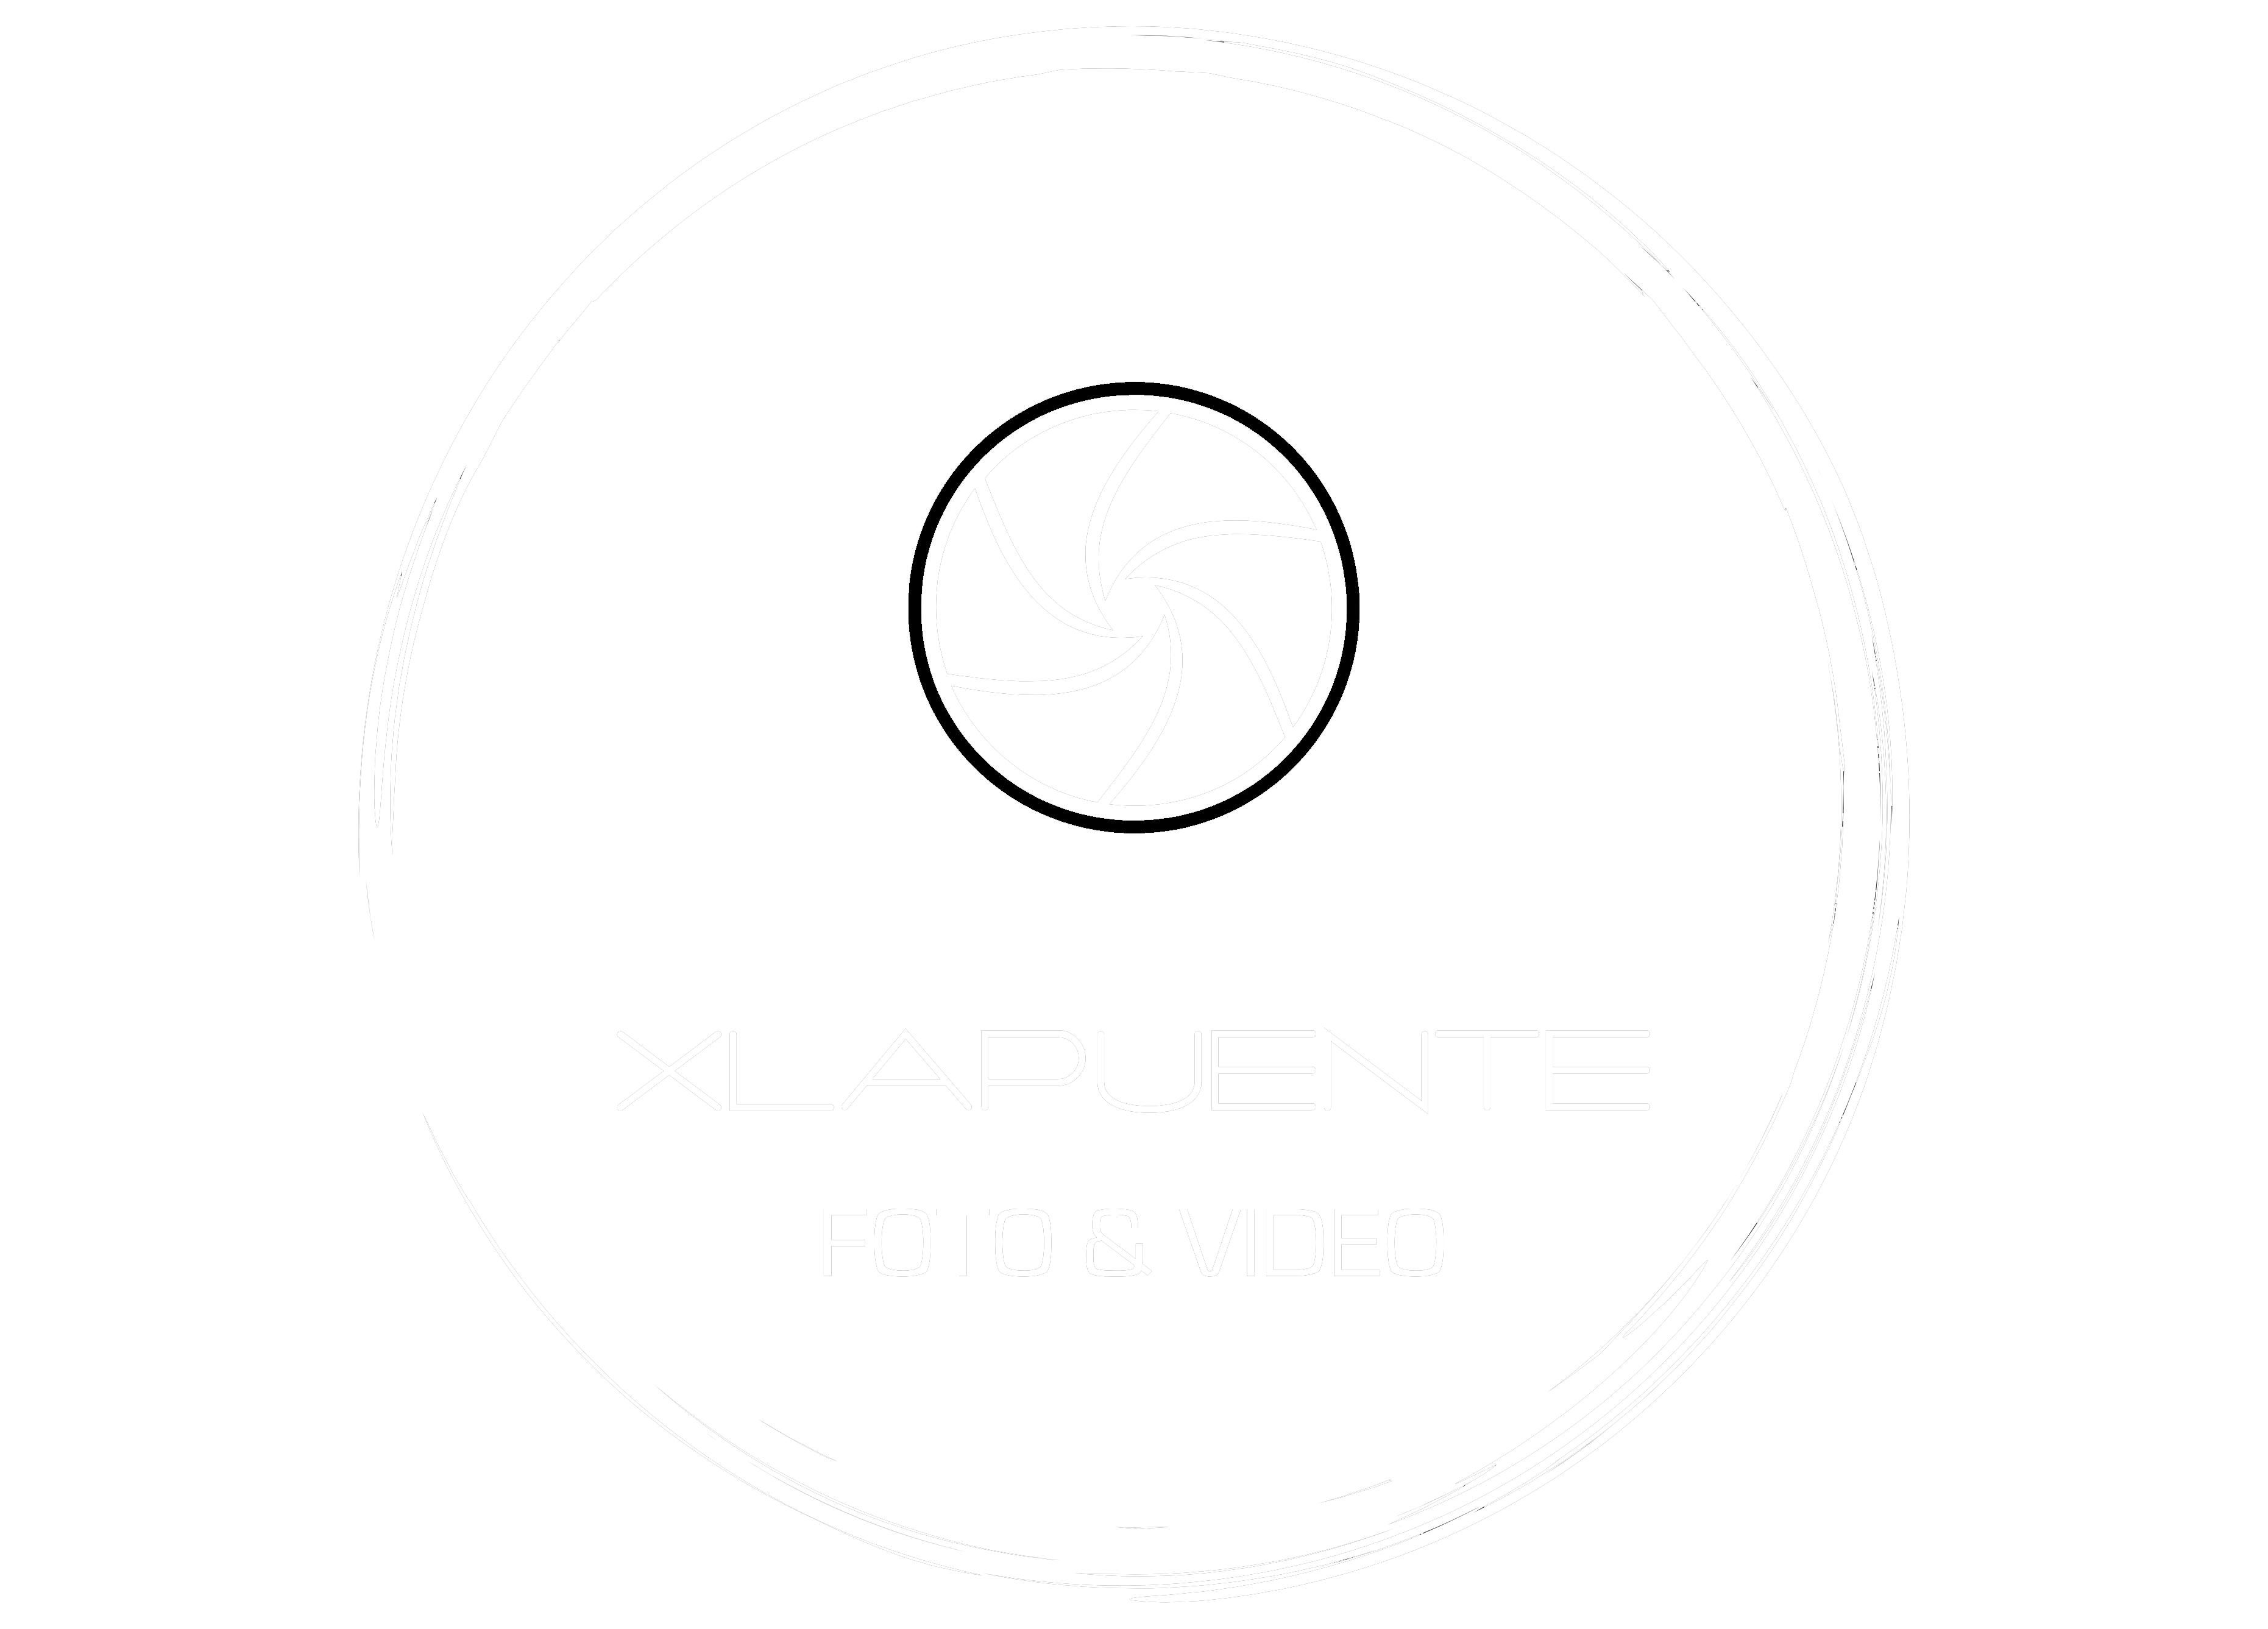 cropped-LOGO-XLAPUENTE-FOTOVIDEO-RODO-TRANSPARENT-BLANC.png?fit=3722%2C2674&s